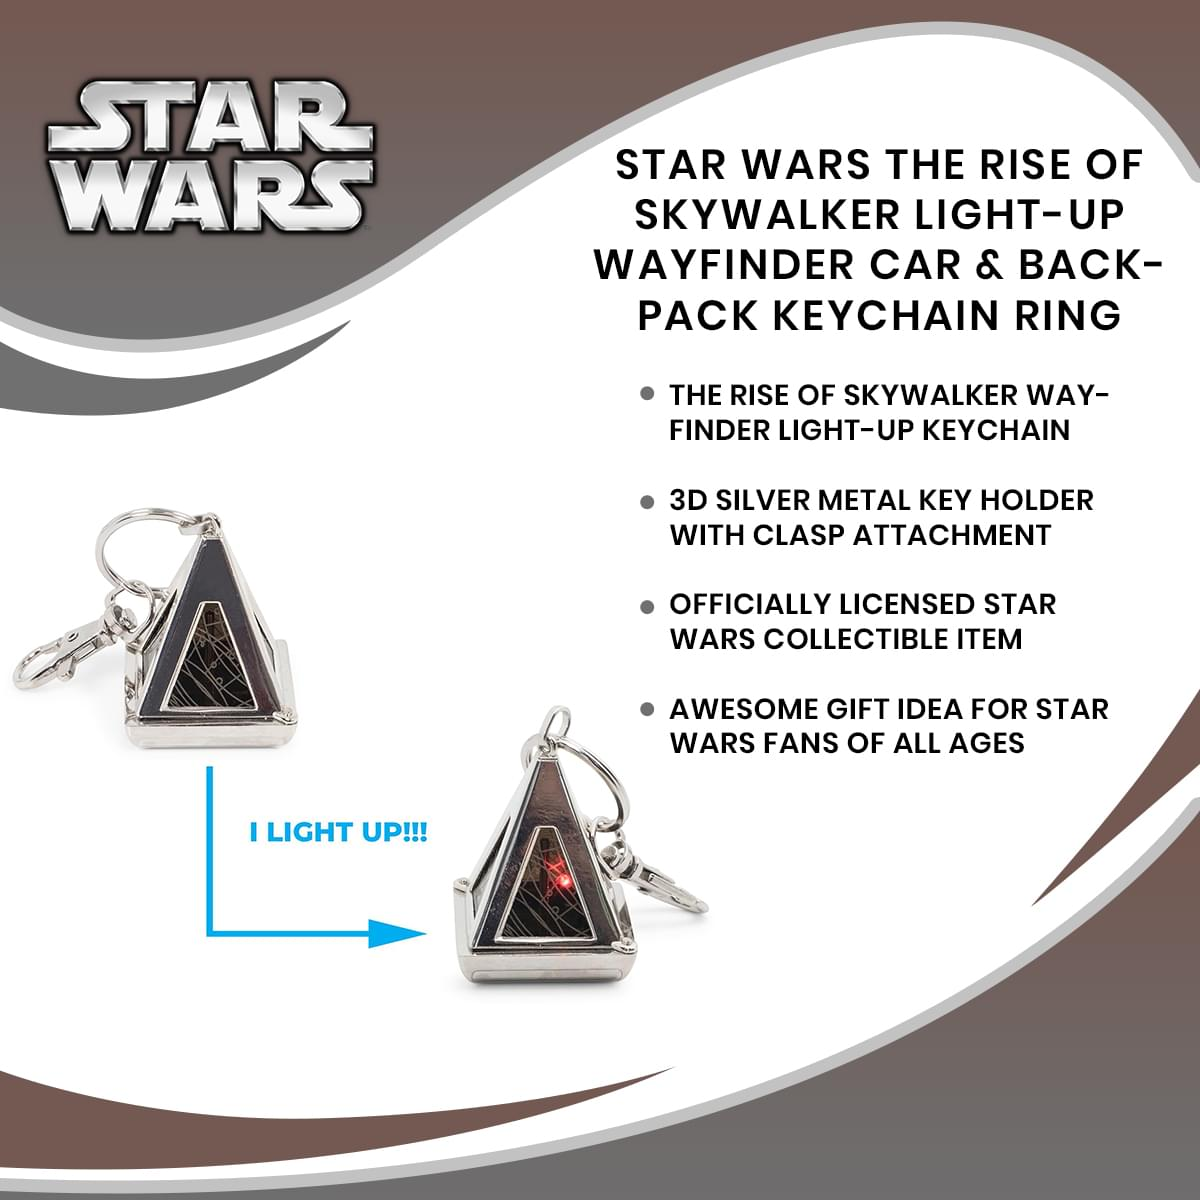 Star Wars The Rise of Skywalker Light-Up Wayfinder Car & Backpack Keychain Ring